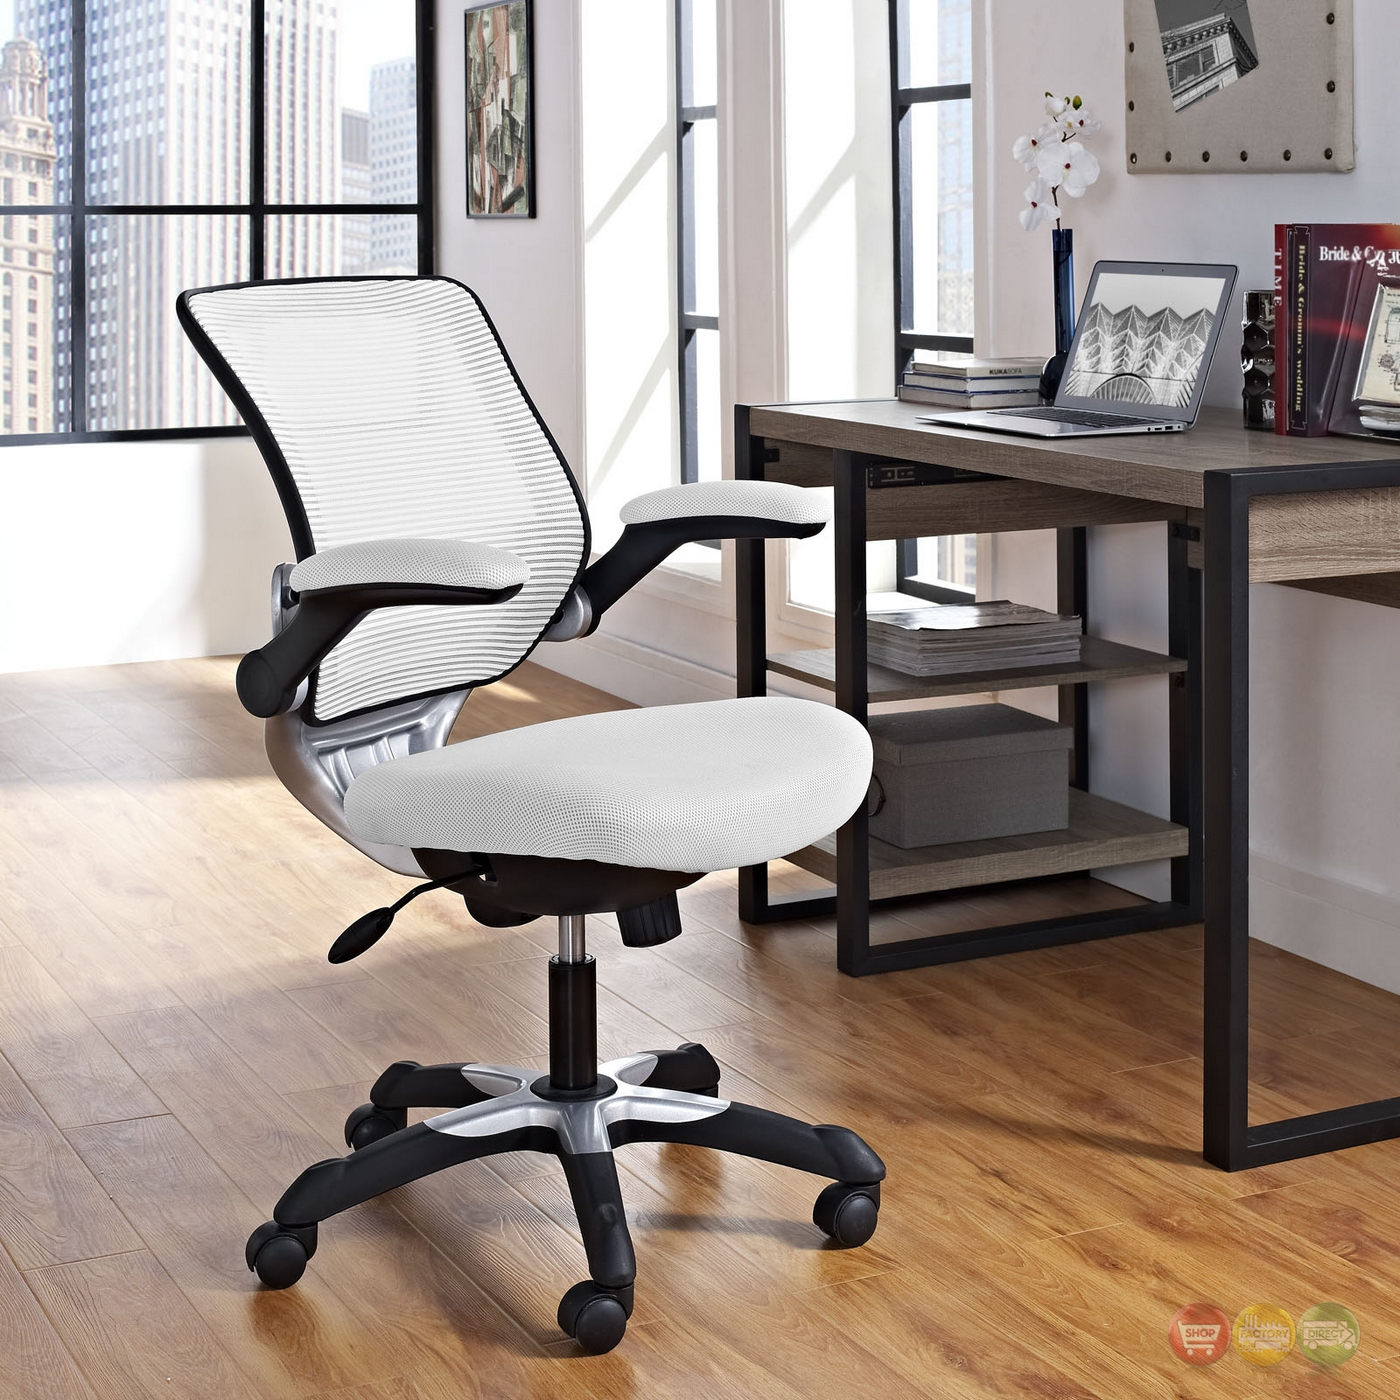 Edge modern adjustable ergonomic mesh office chair white for Modern white office chair